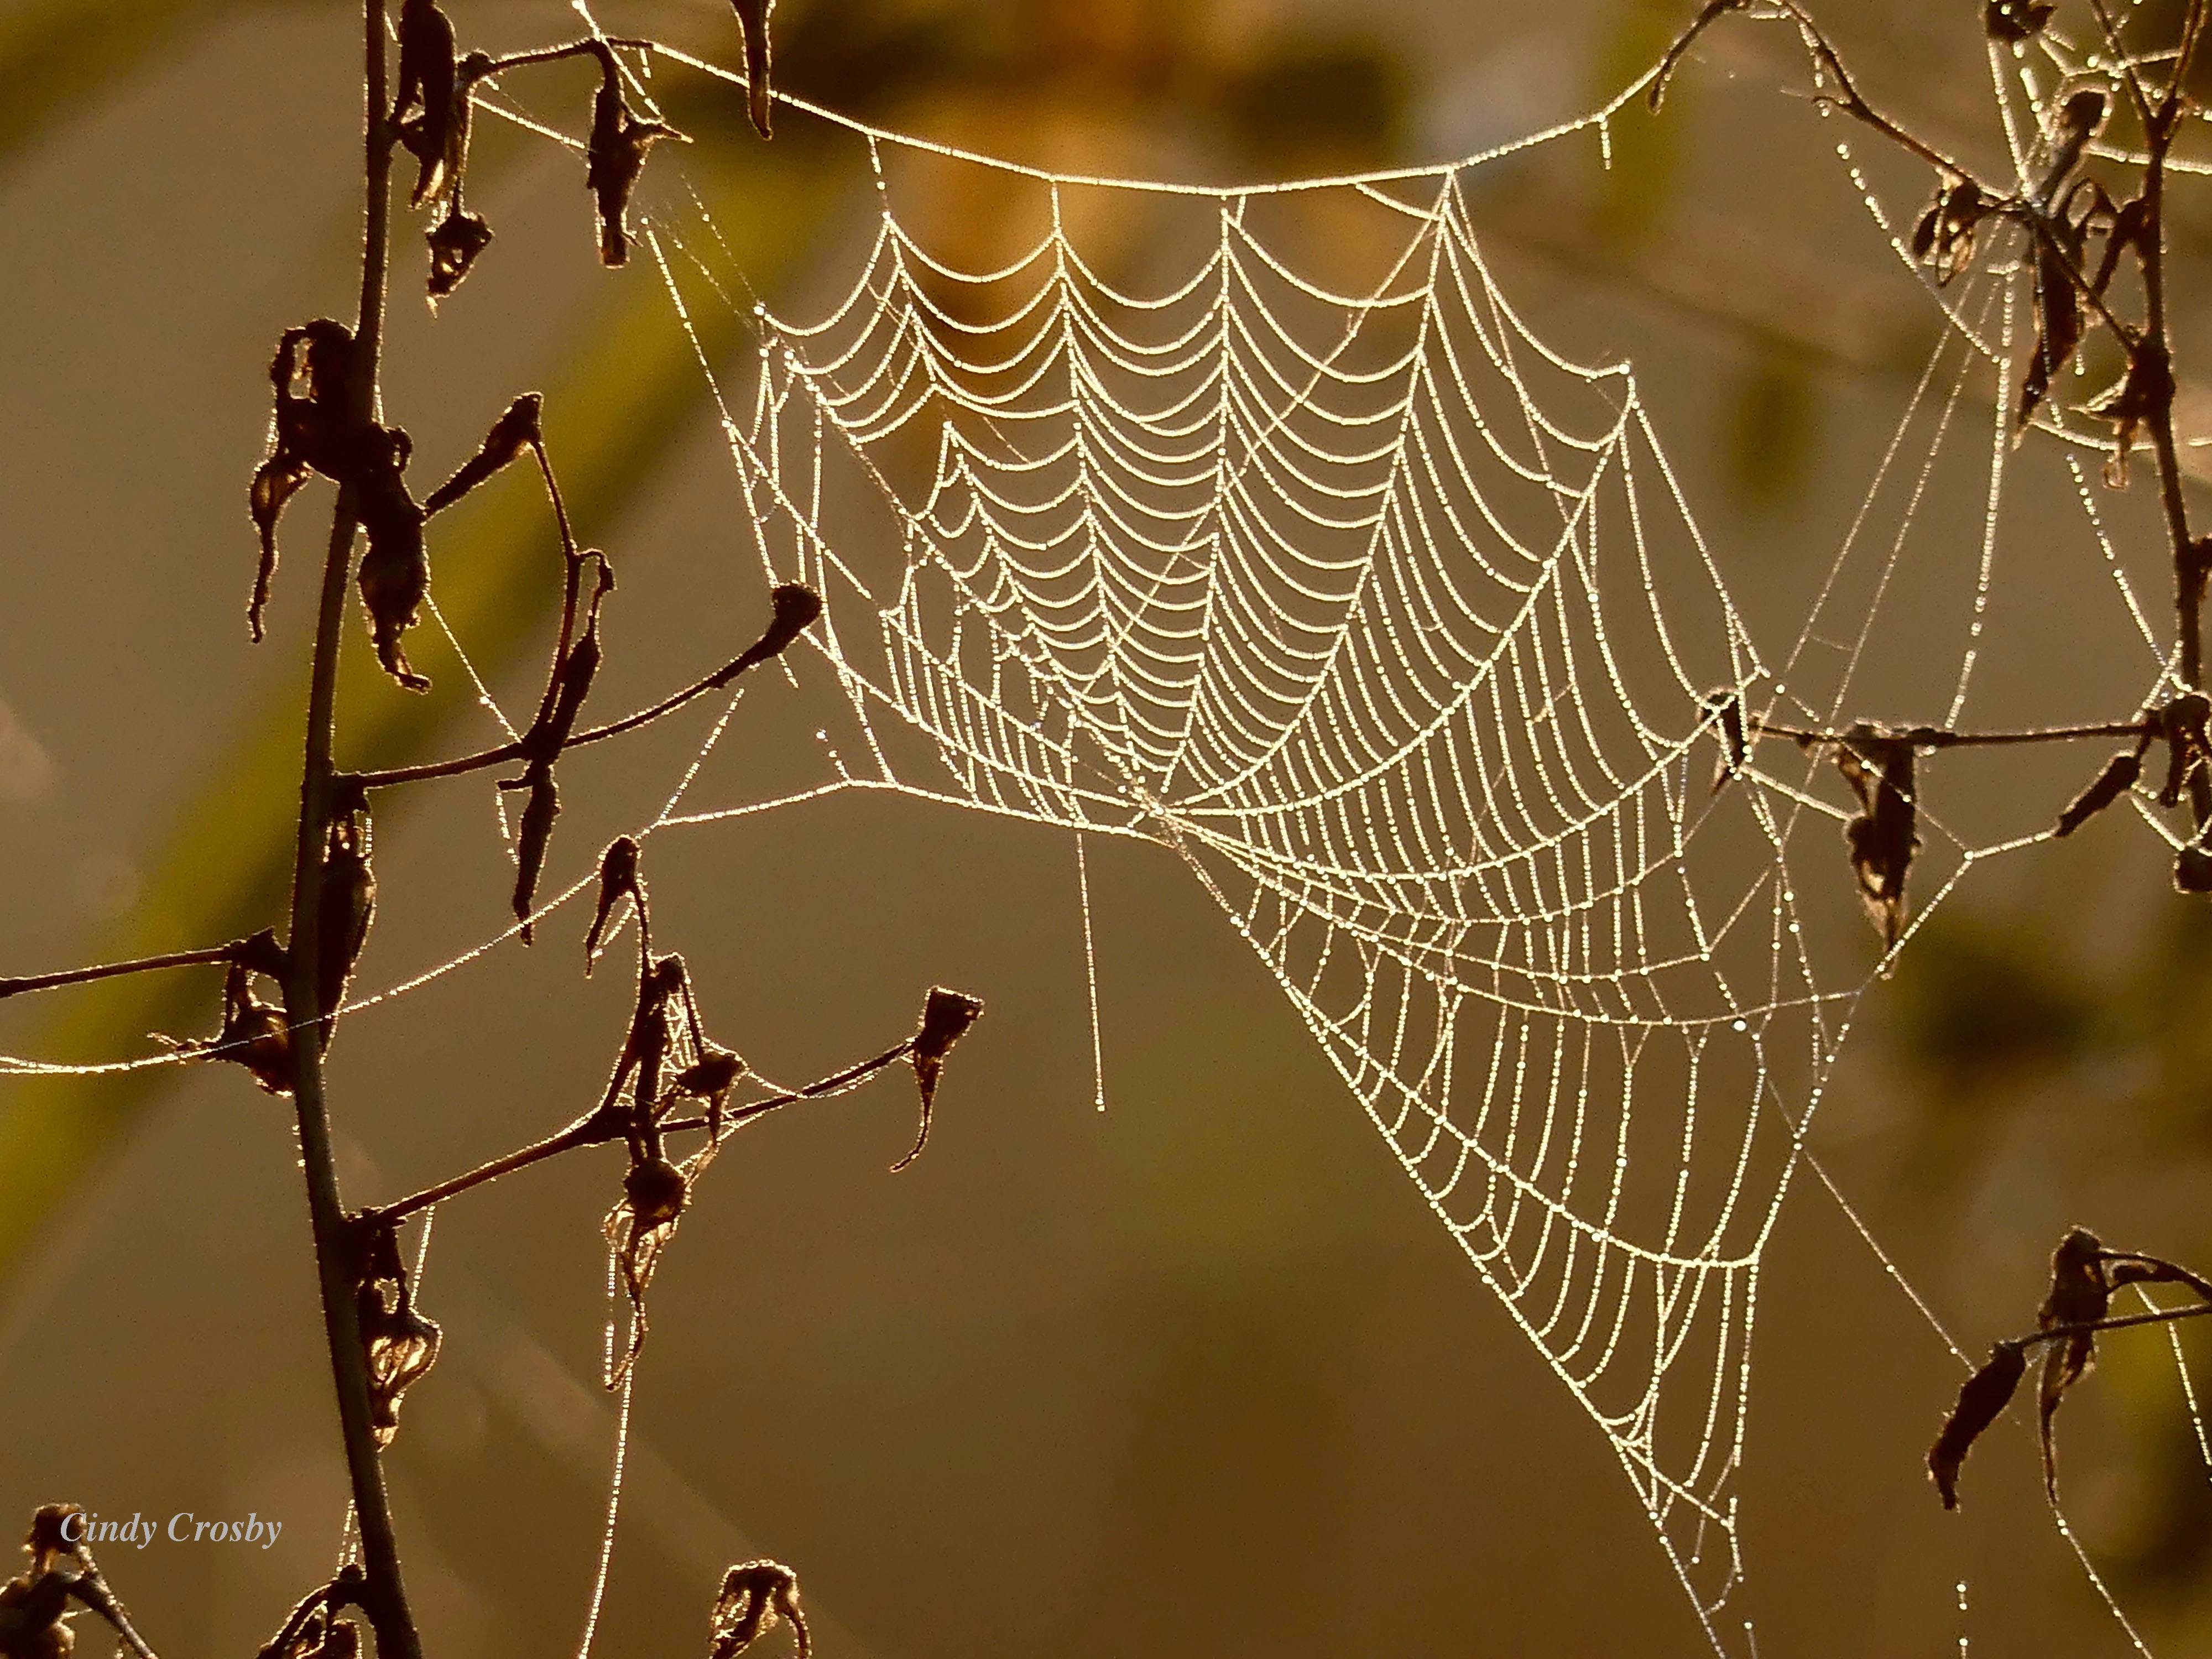 spiderwebdewfogSPMA93019WM.jpg